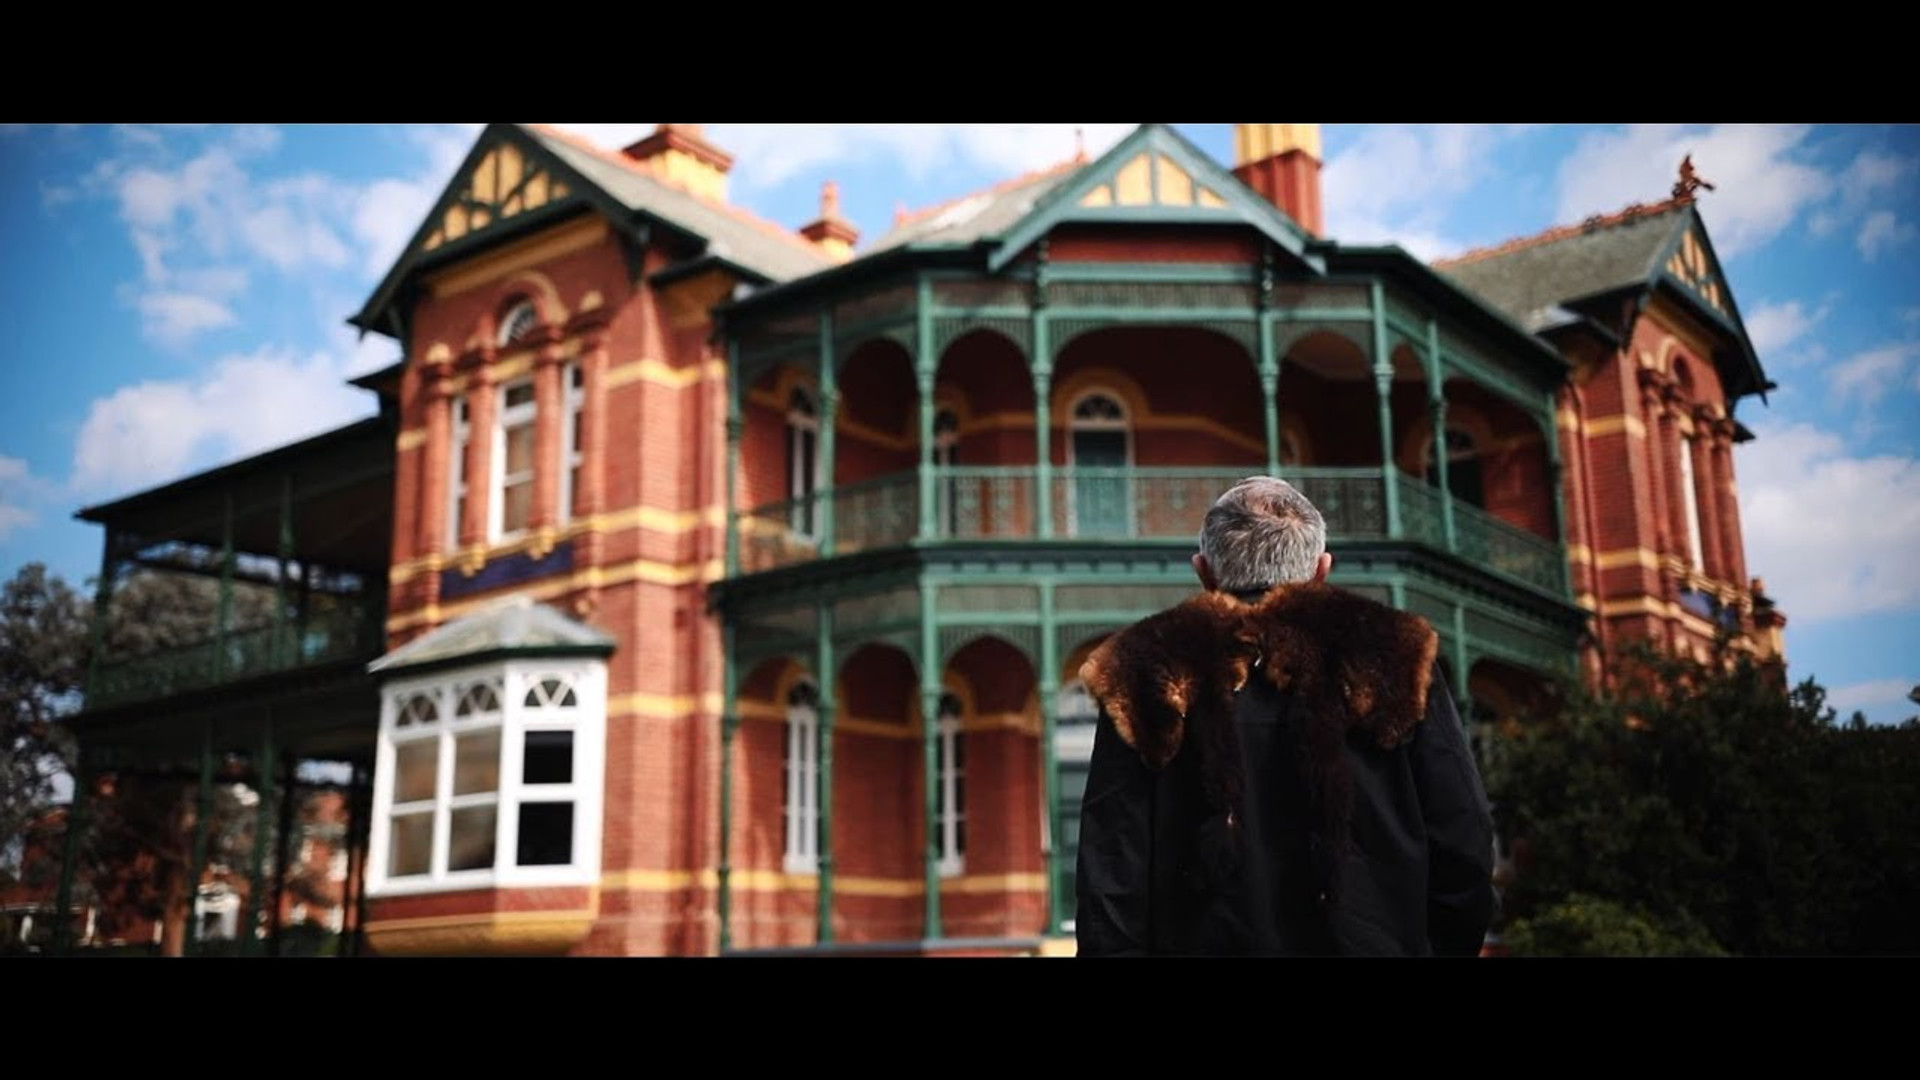 Built in 1900, Bundoora Homestead is a magnificent Queen Anne style Federation mansion